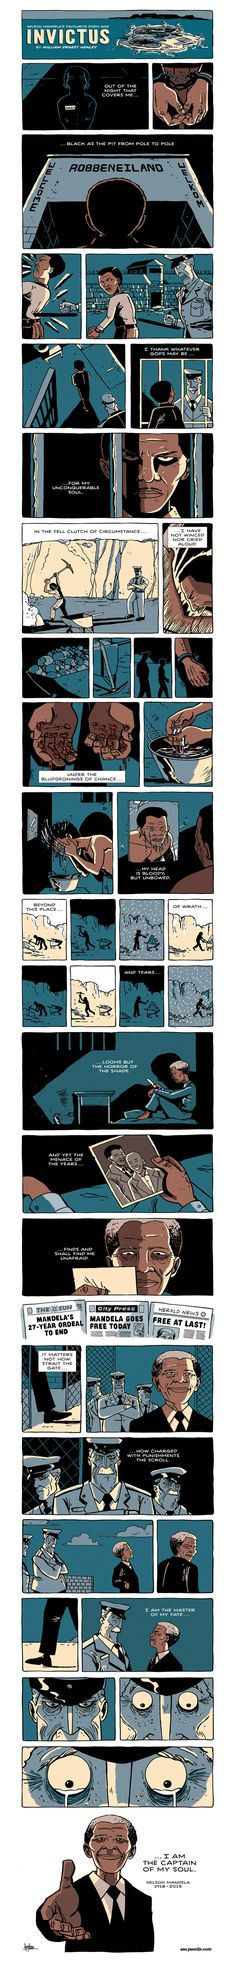 Zen Pencils is too brilliant. Stick with this one; the last 10 panels are the the perfect description of what made Mandela great